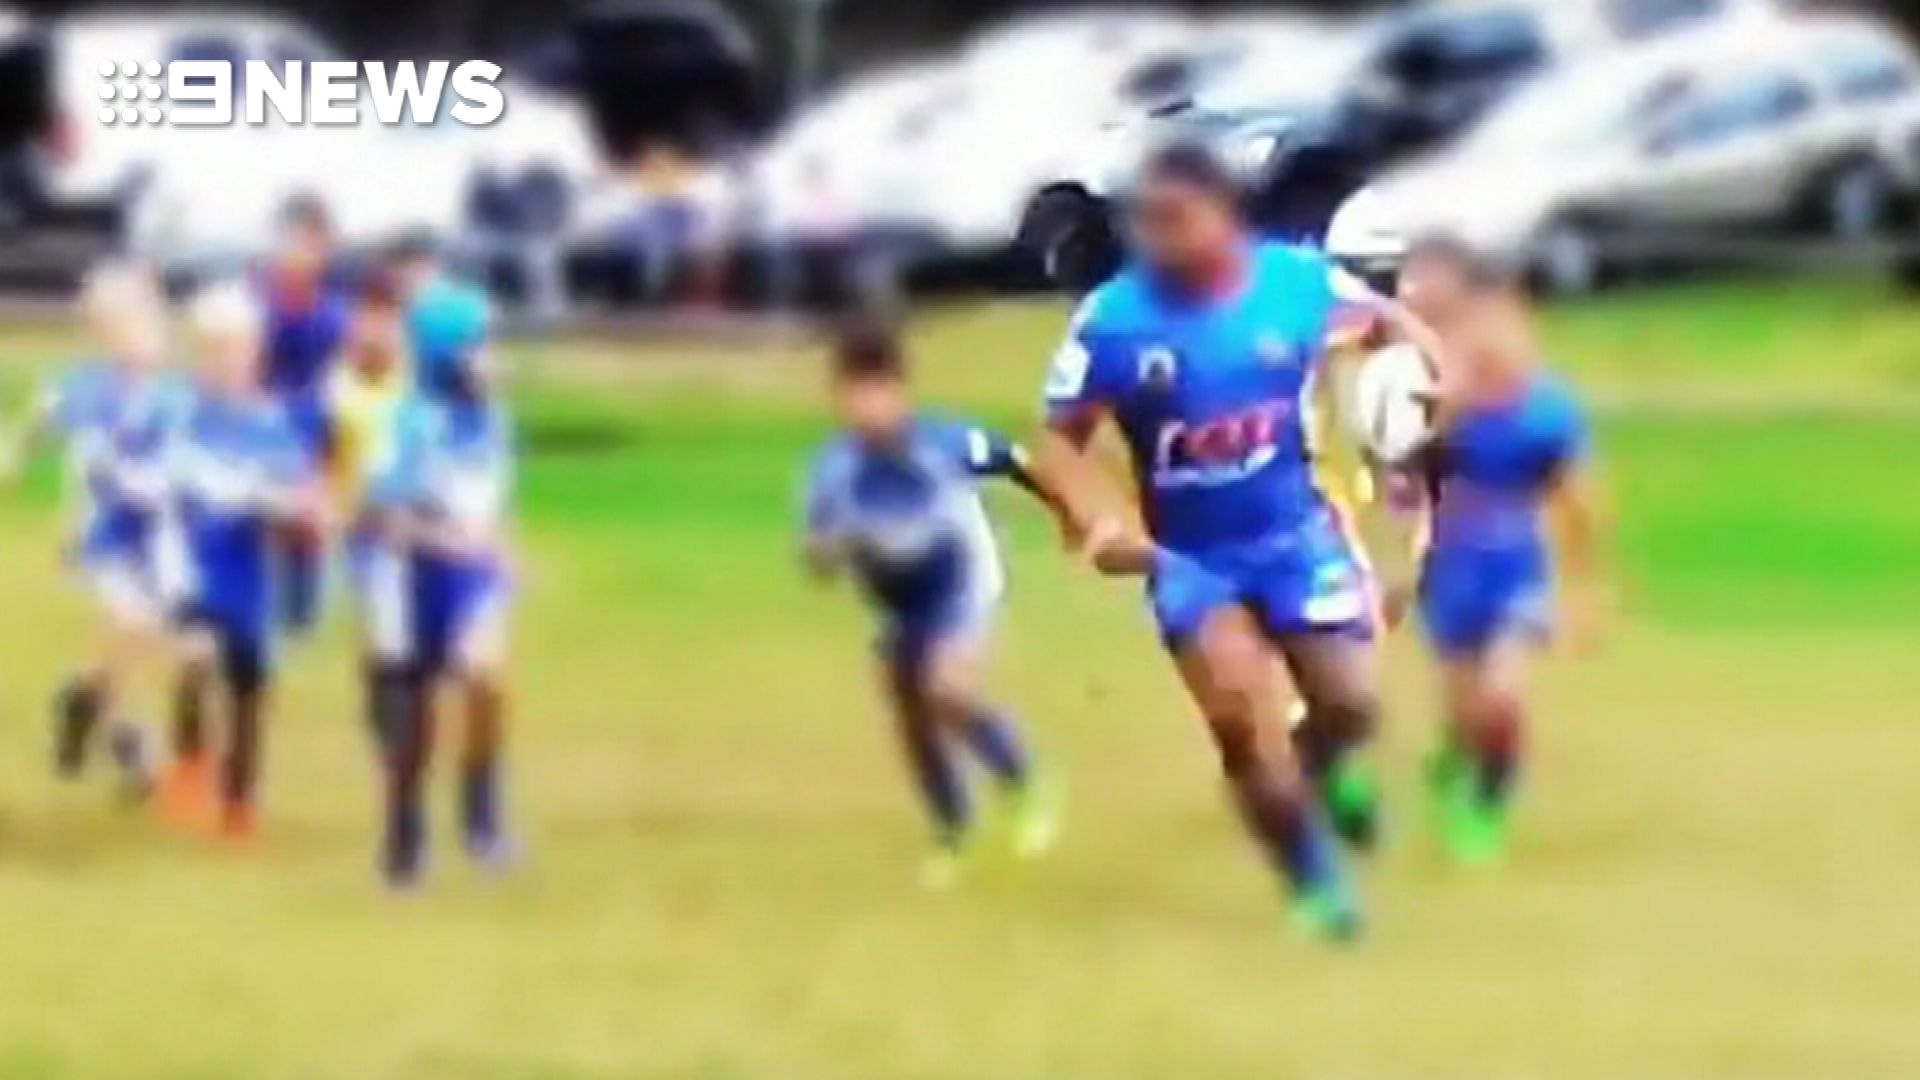 Junior Bulldogs player ignites age vs. weight debate in Rugby League